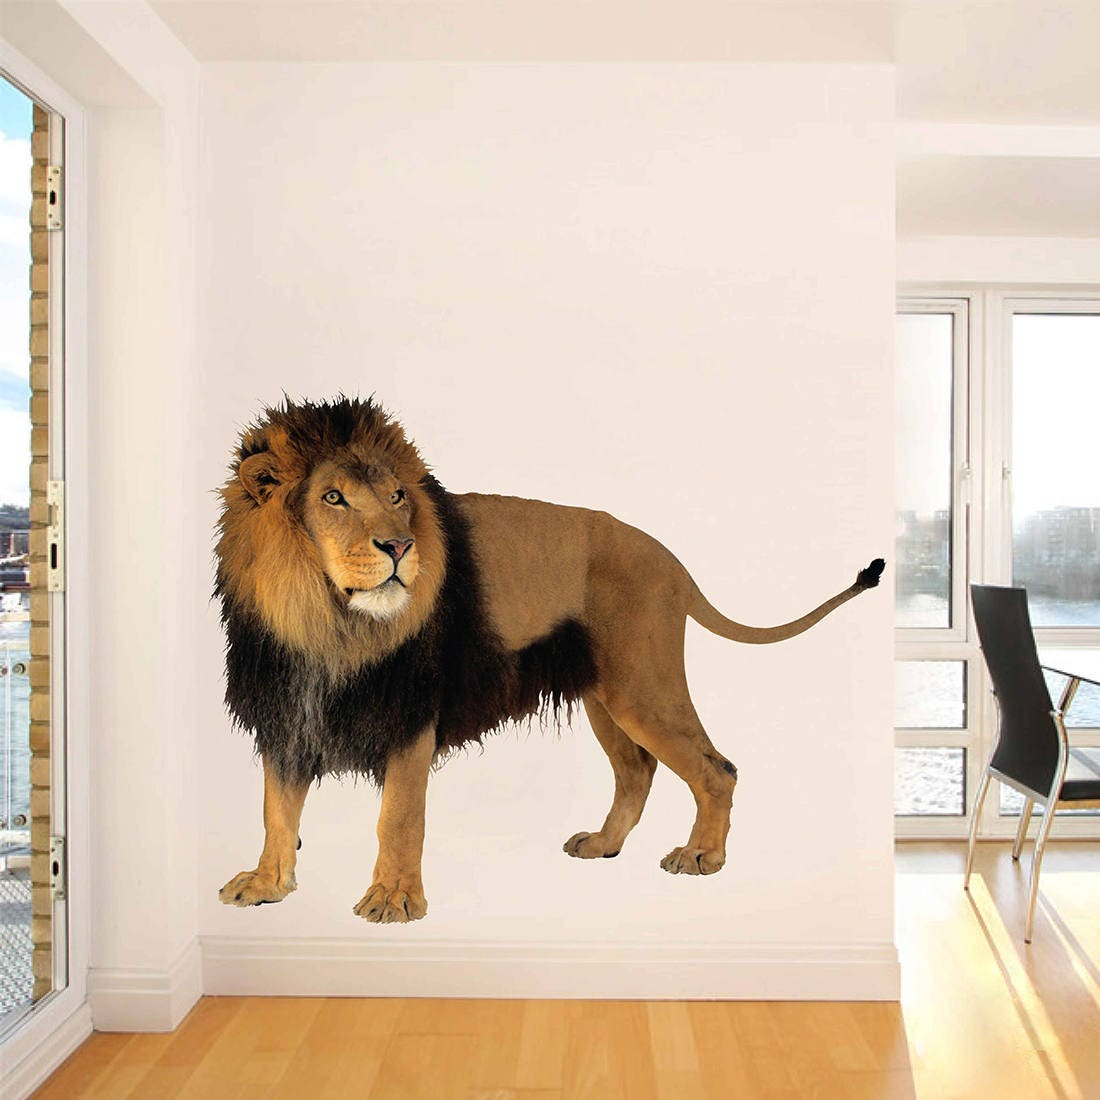 Lion Wall Decals Lion Wall Decor Lion Full Color Decals Etsy